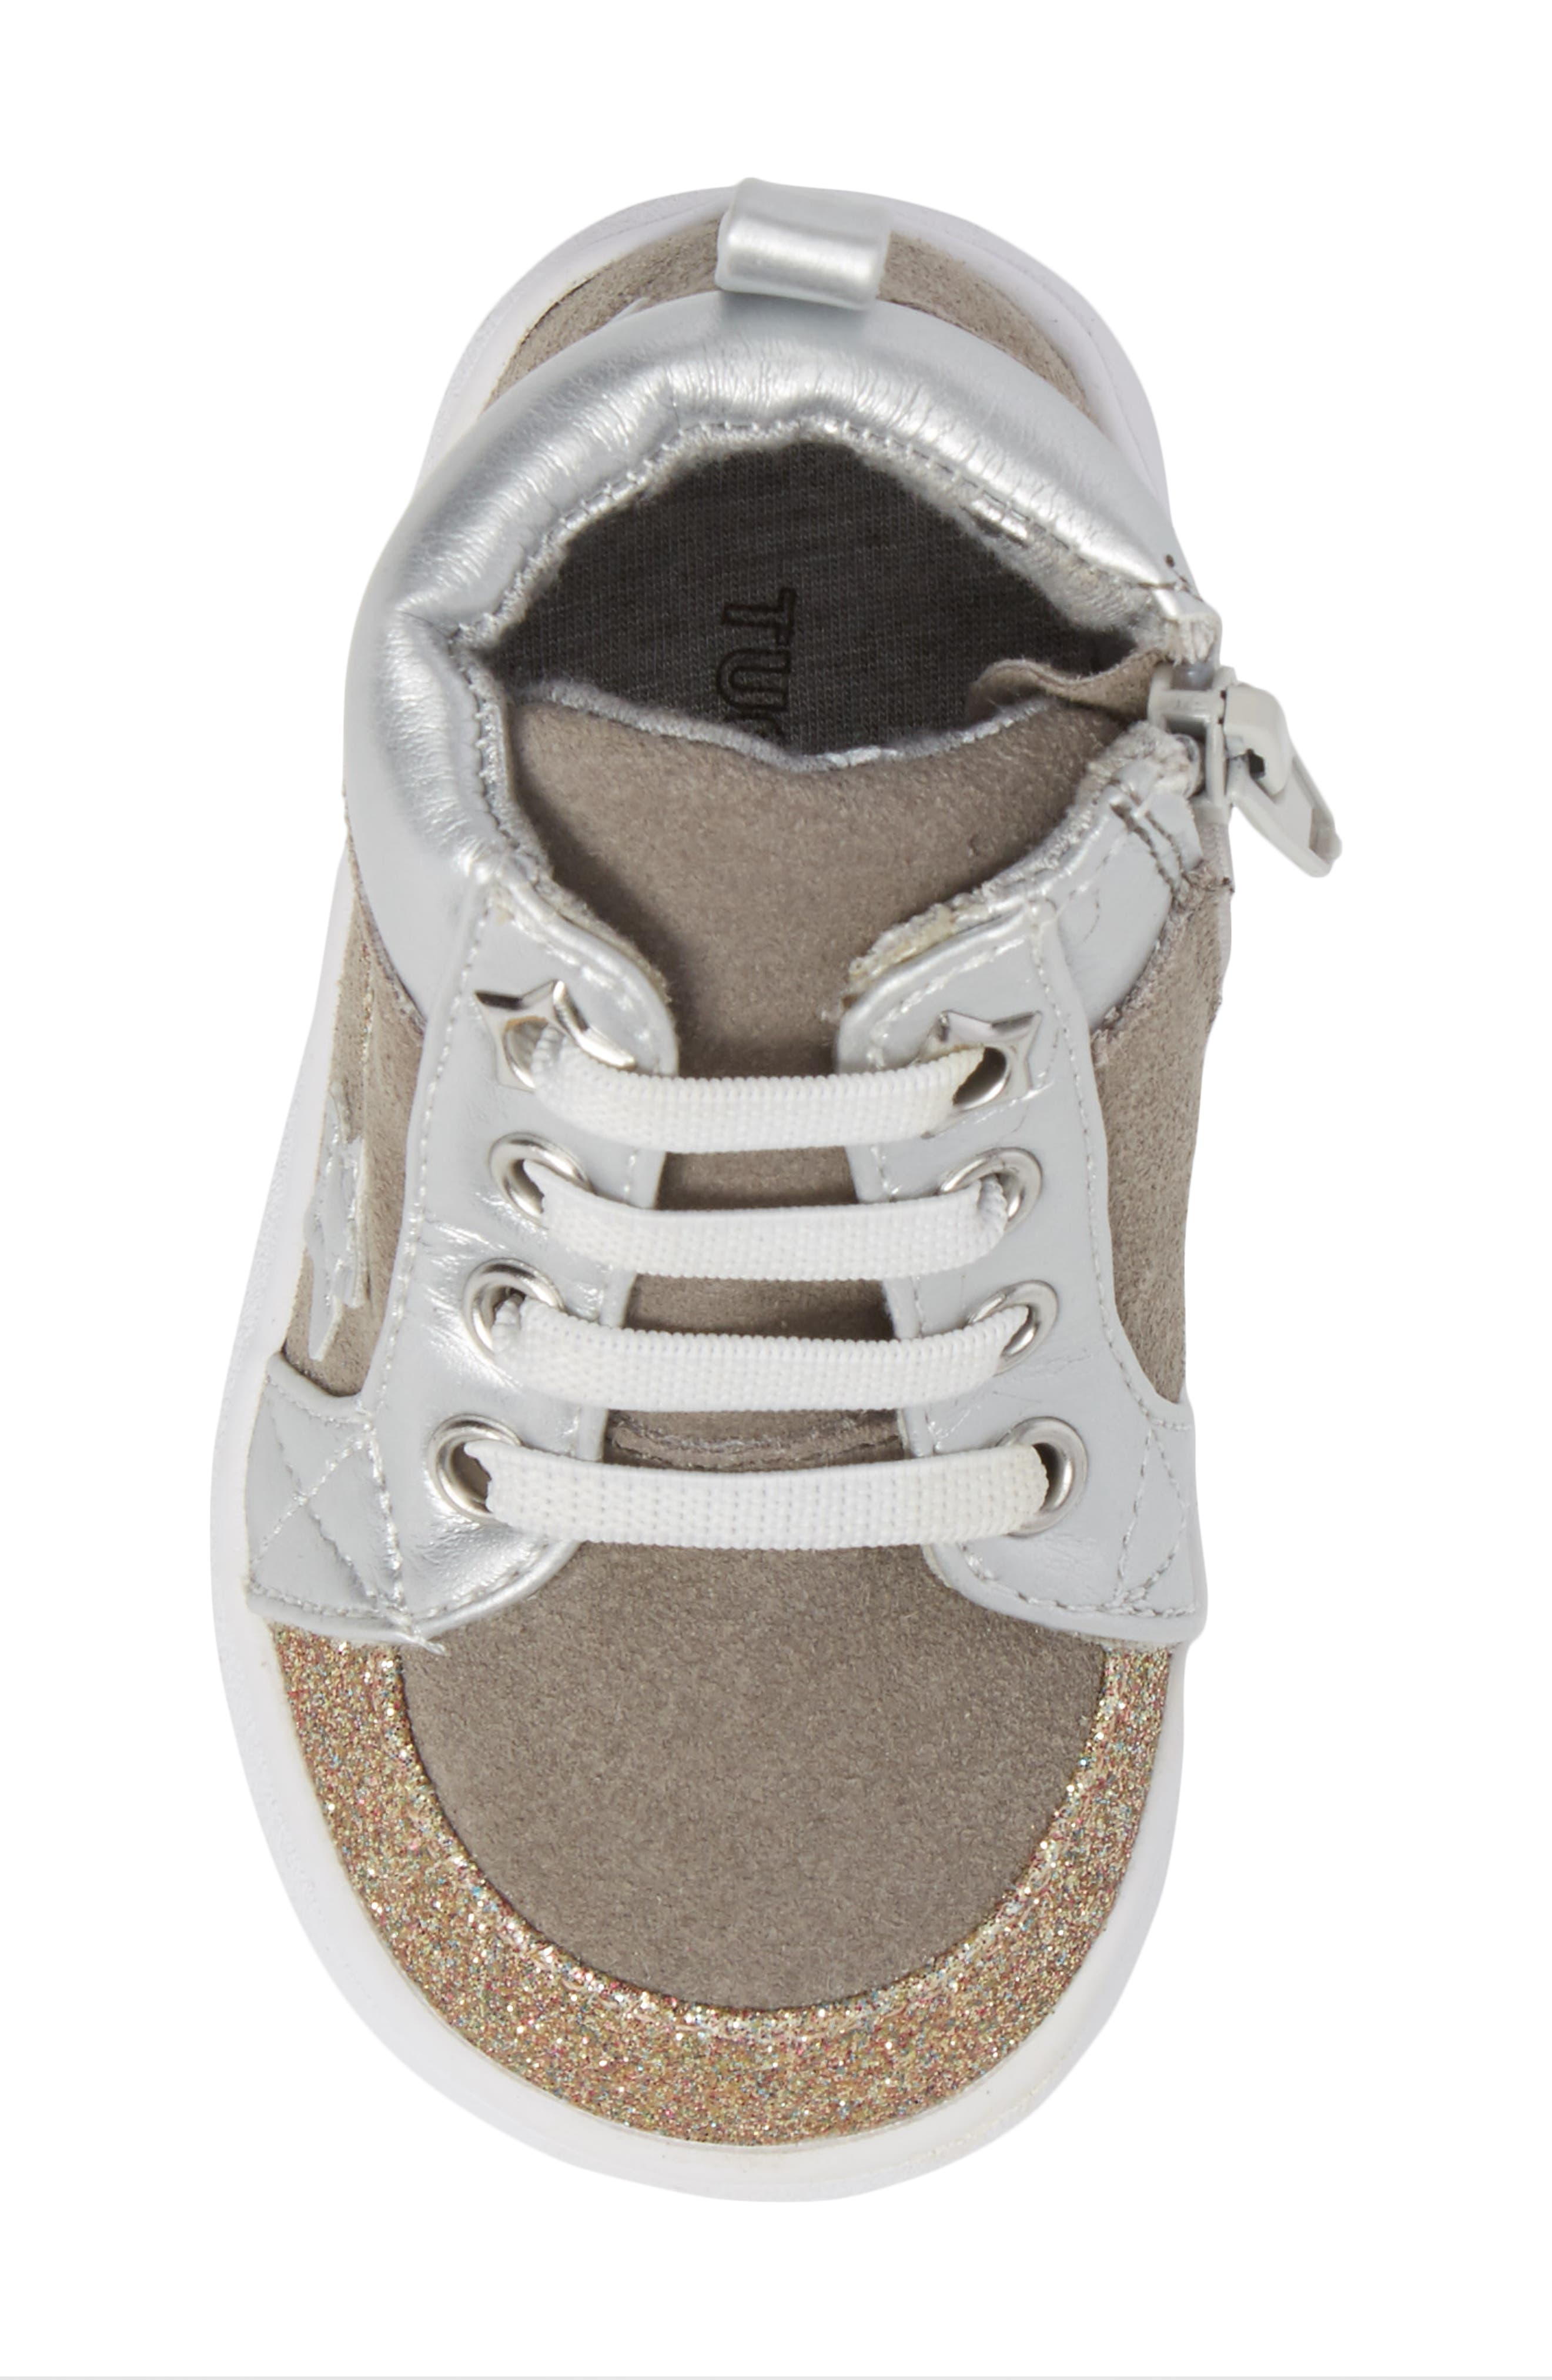 Diantha Star Appliqué High Top Sneaker,                             Alternate thumbnail 5, color,                             Grey Leather